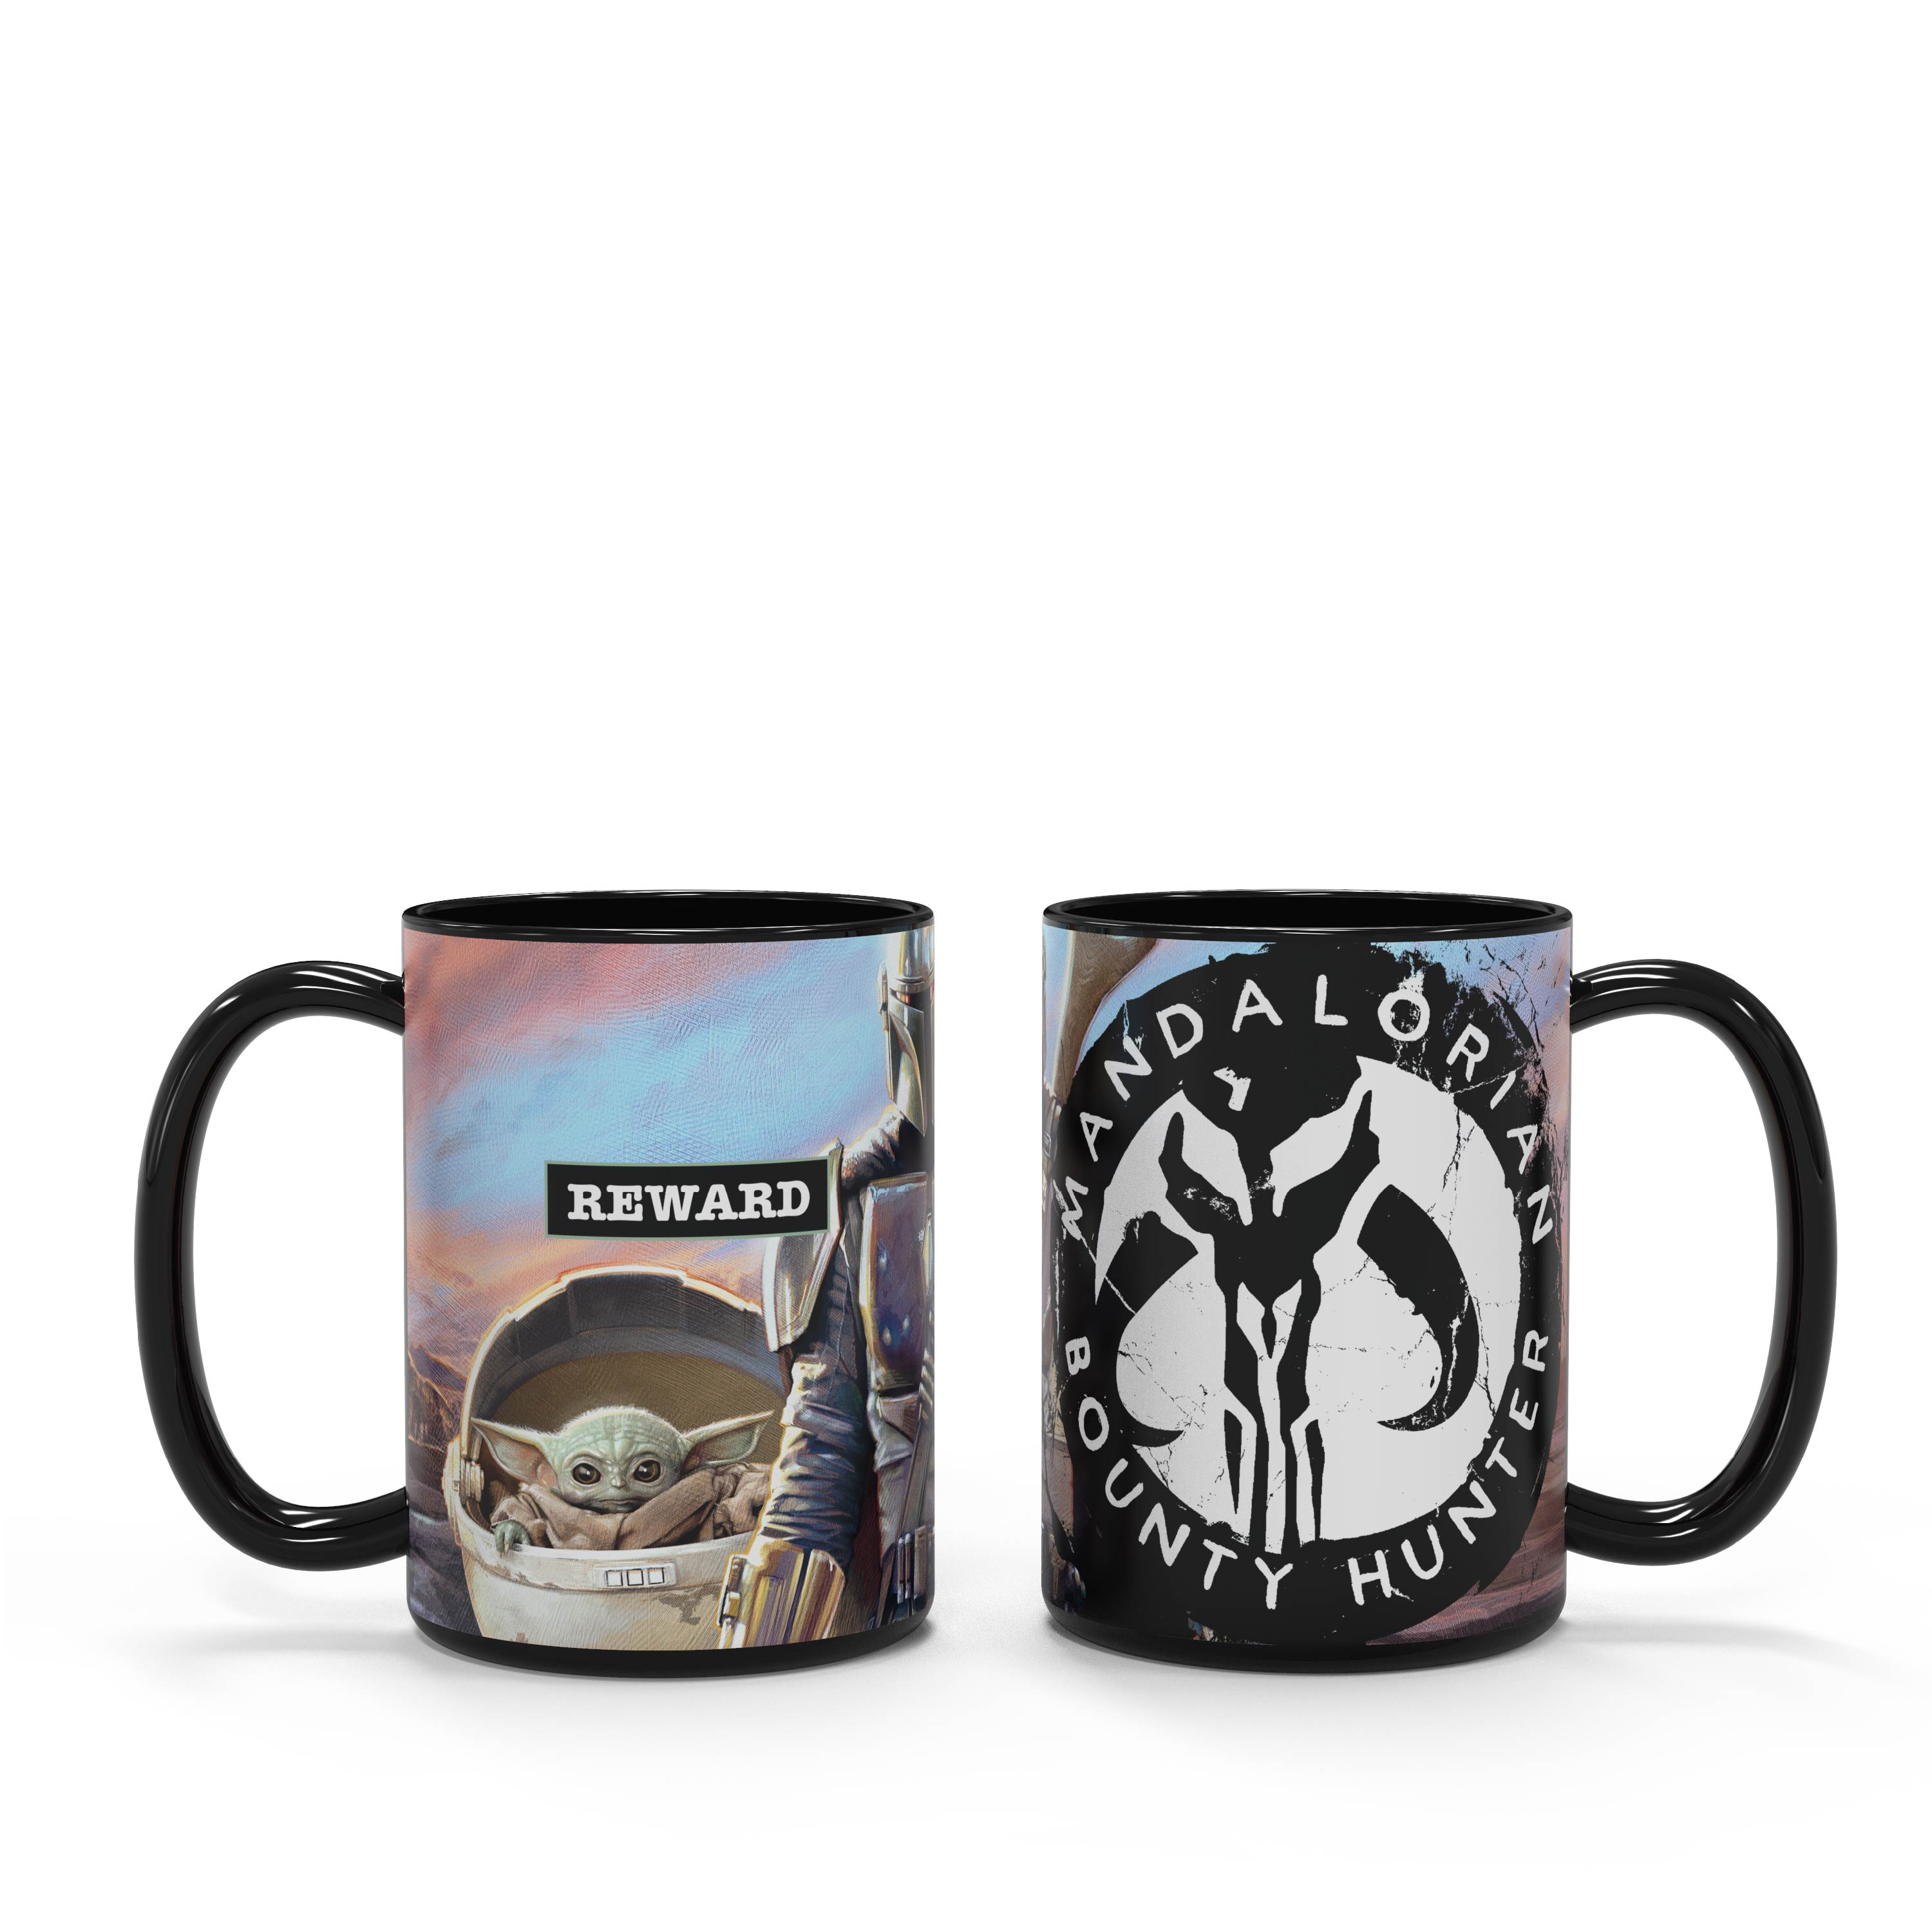 Star Wars: The Mandalorian 15 ounce Ceramic Coffee Mugs, The Mandalorian slideshow image 7